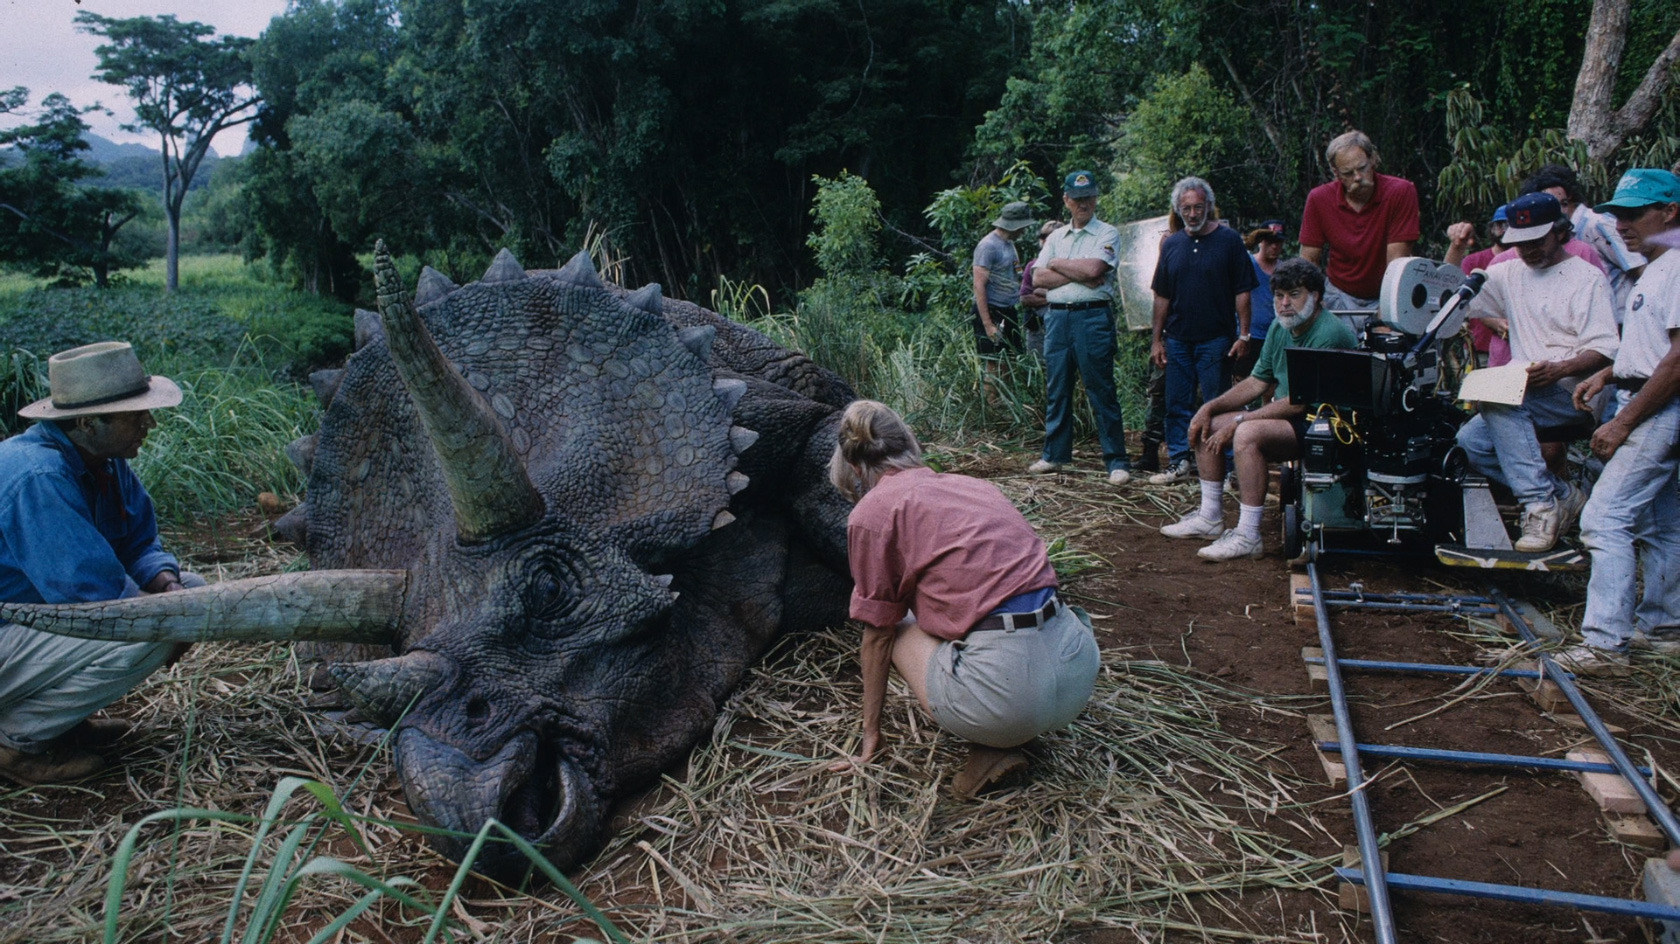 On Set of Jurassic Park (1993) Behind the Scenes